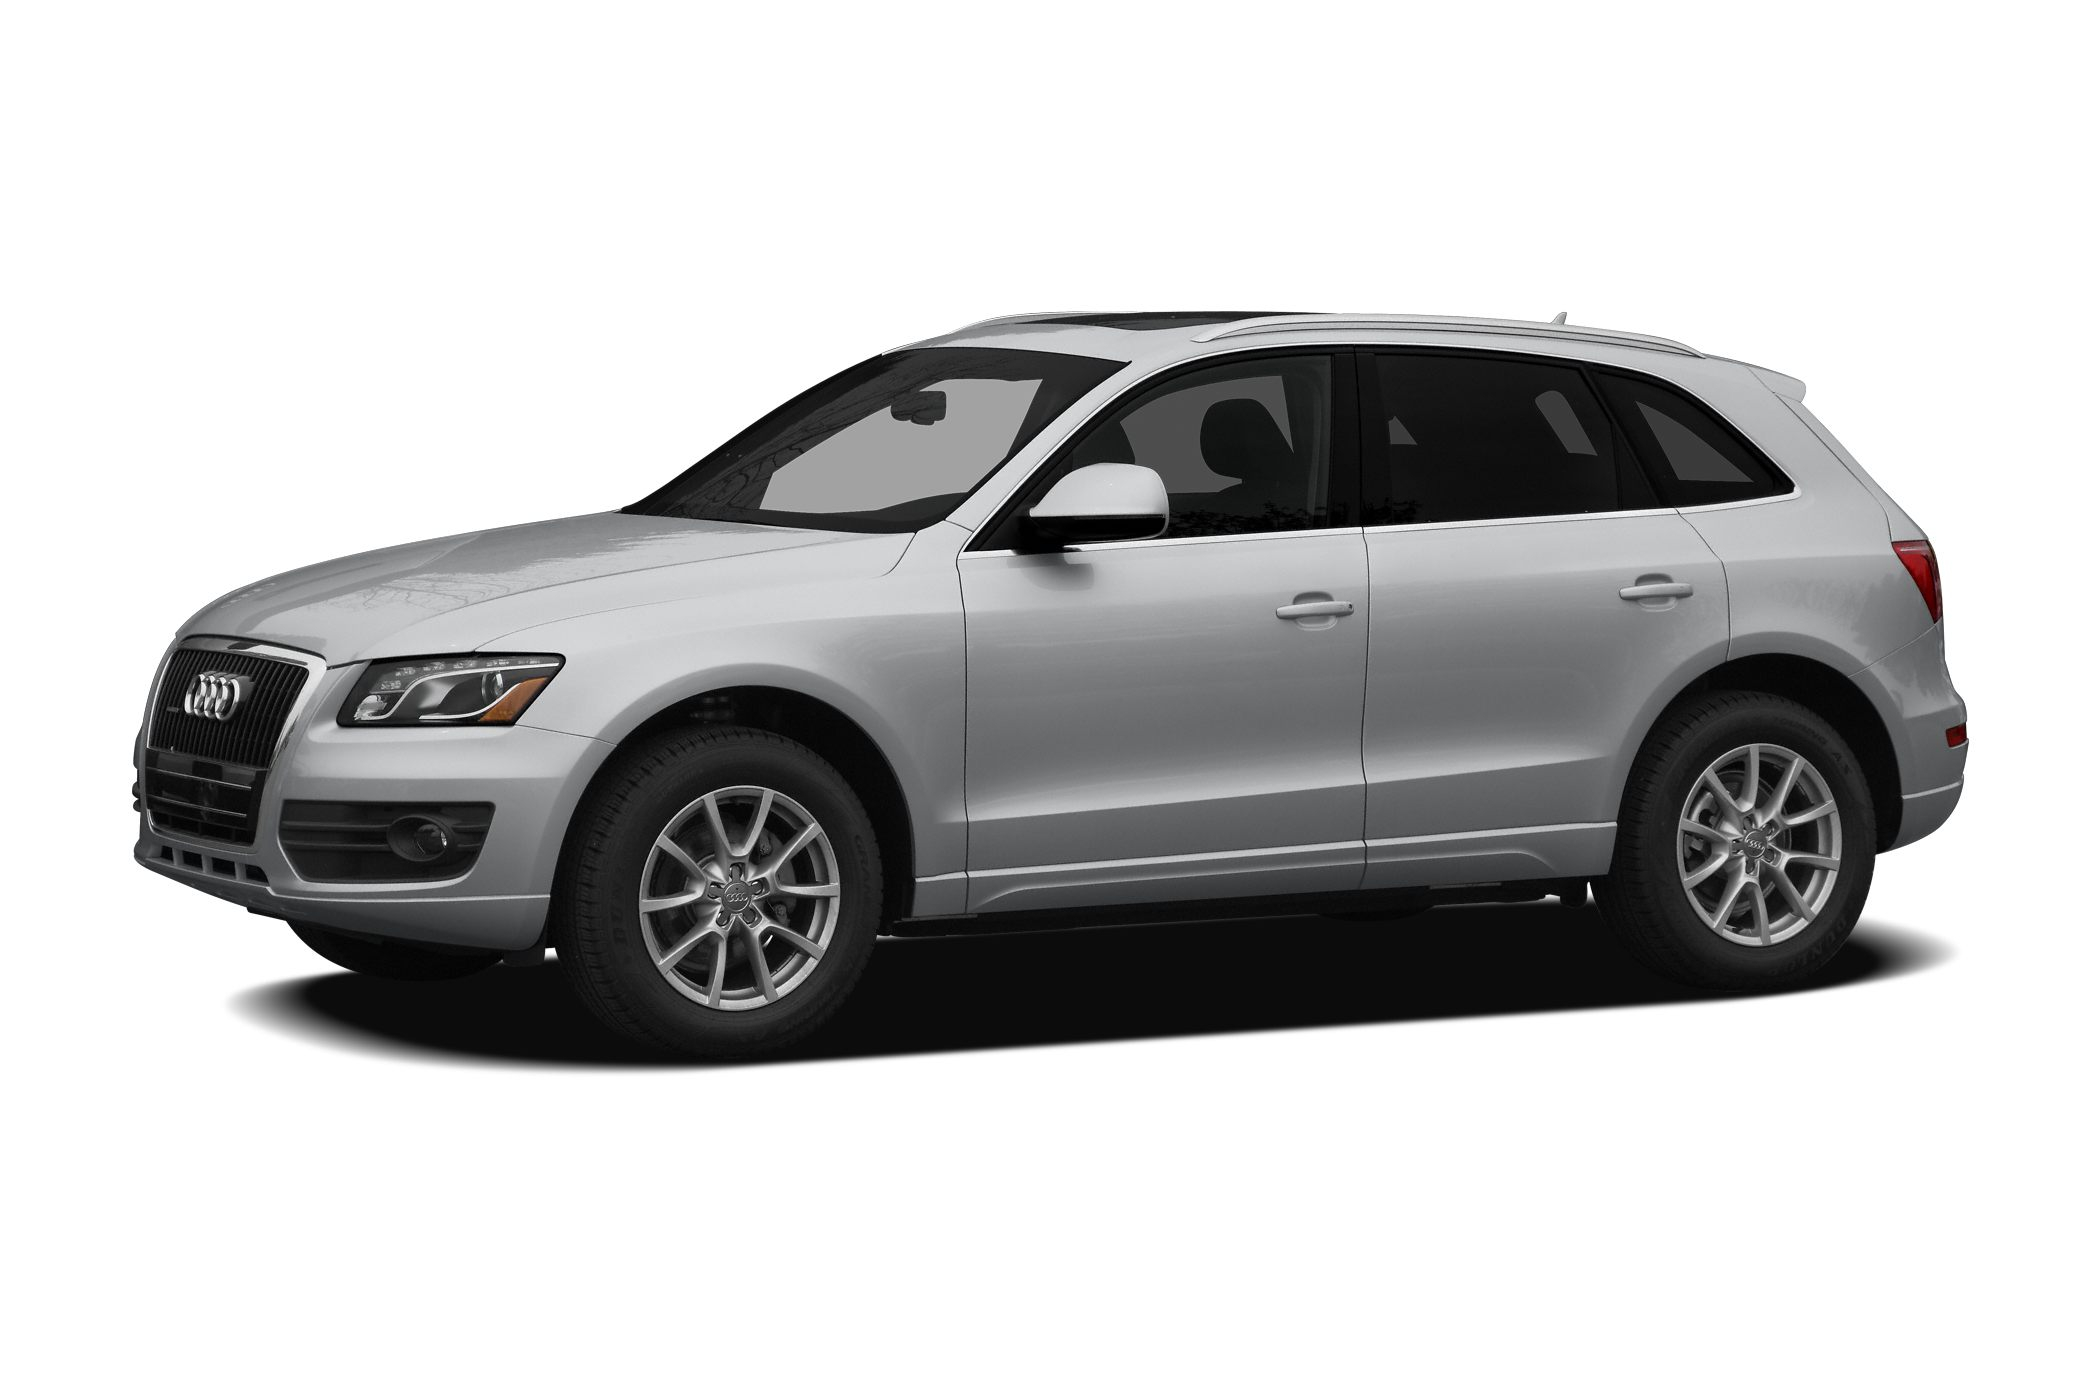 2010 Audi Q5 32 quattro Premium OUR PRICESYoure probably wondering why our prices are so much l